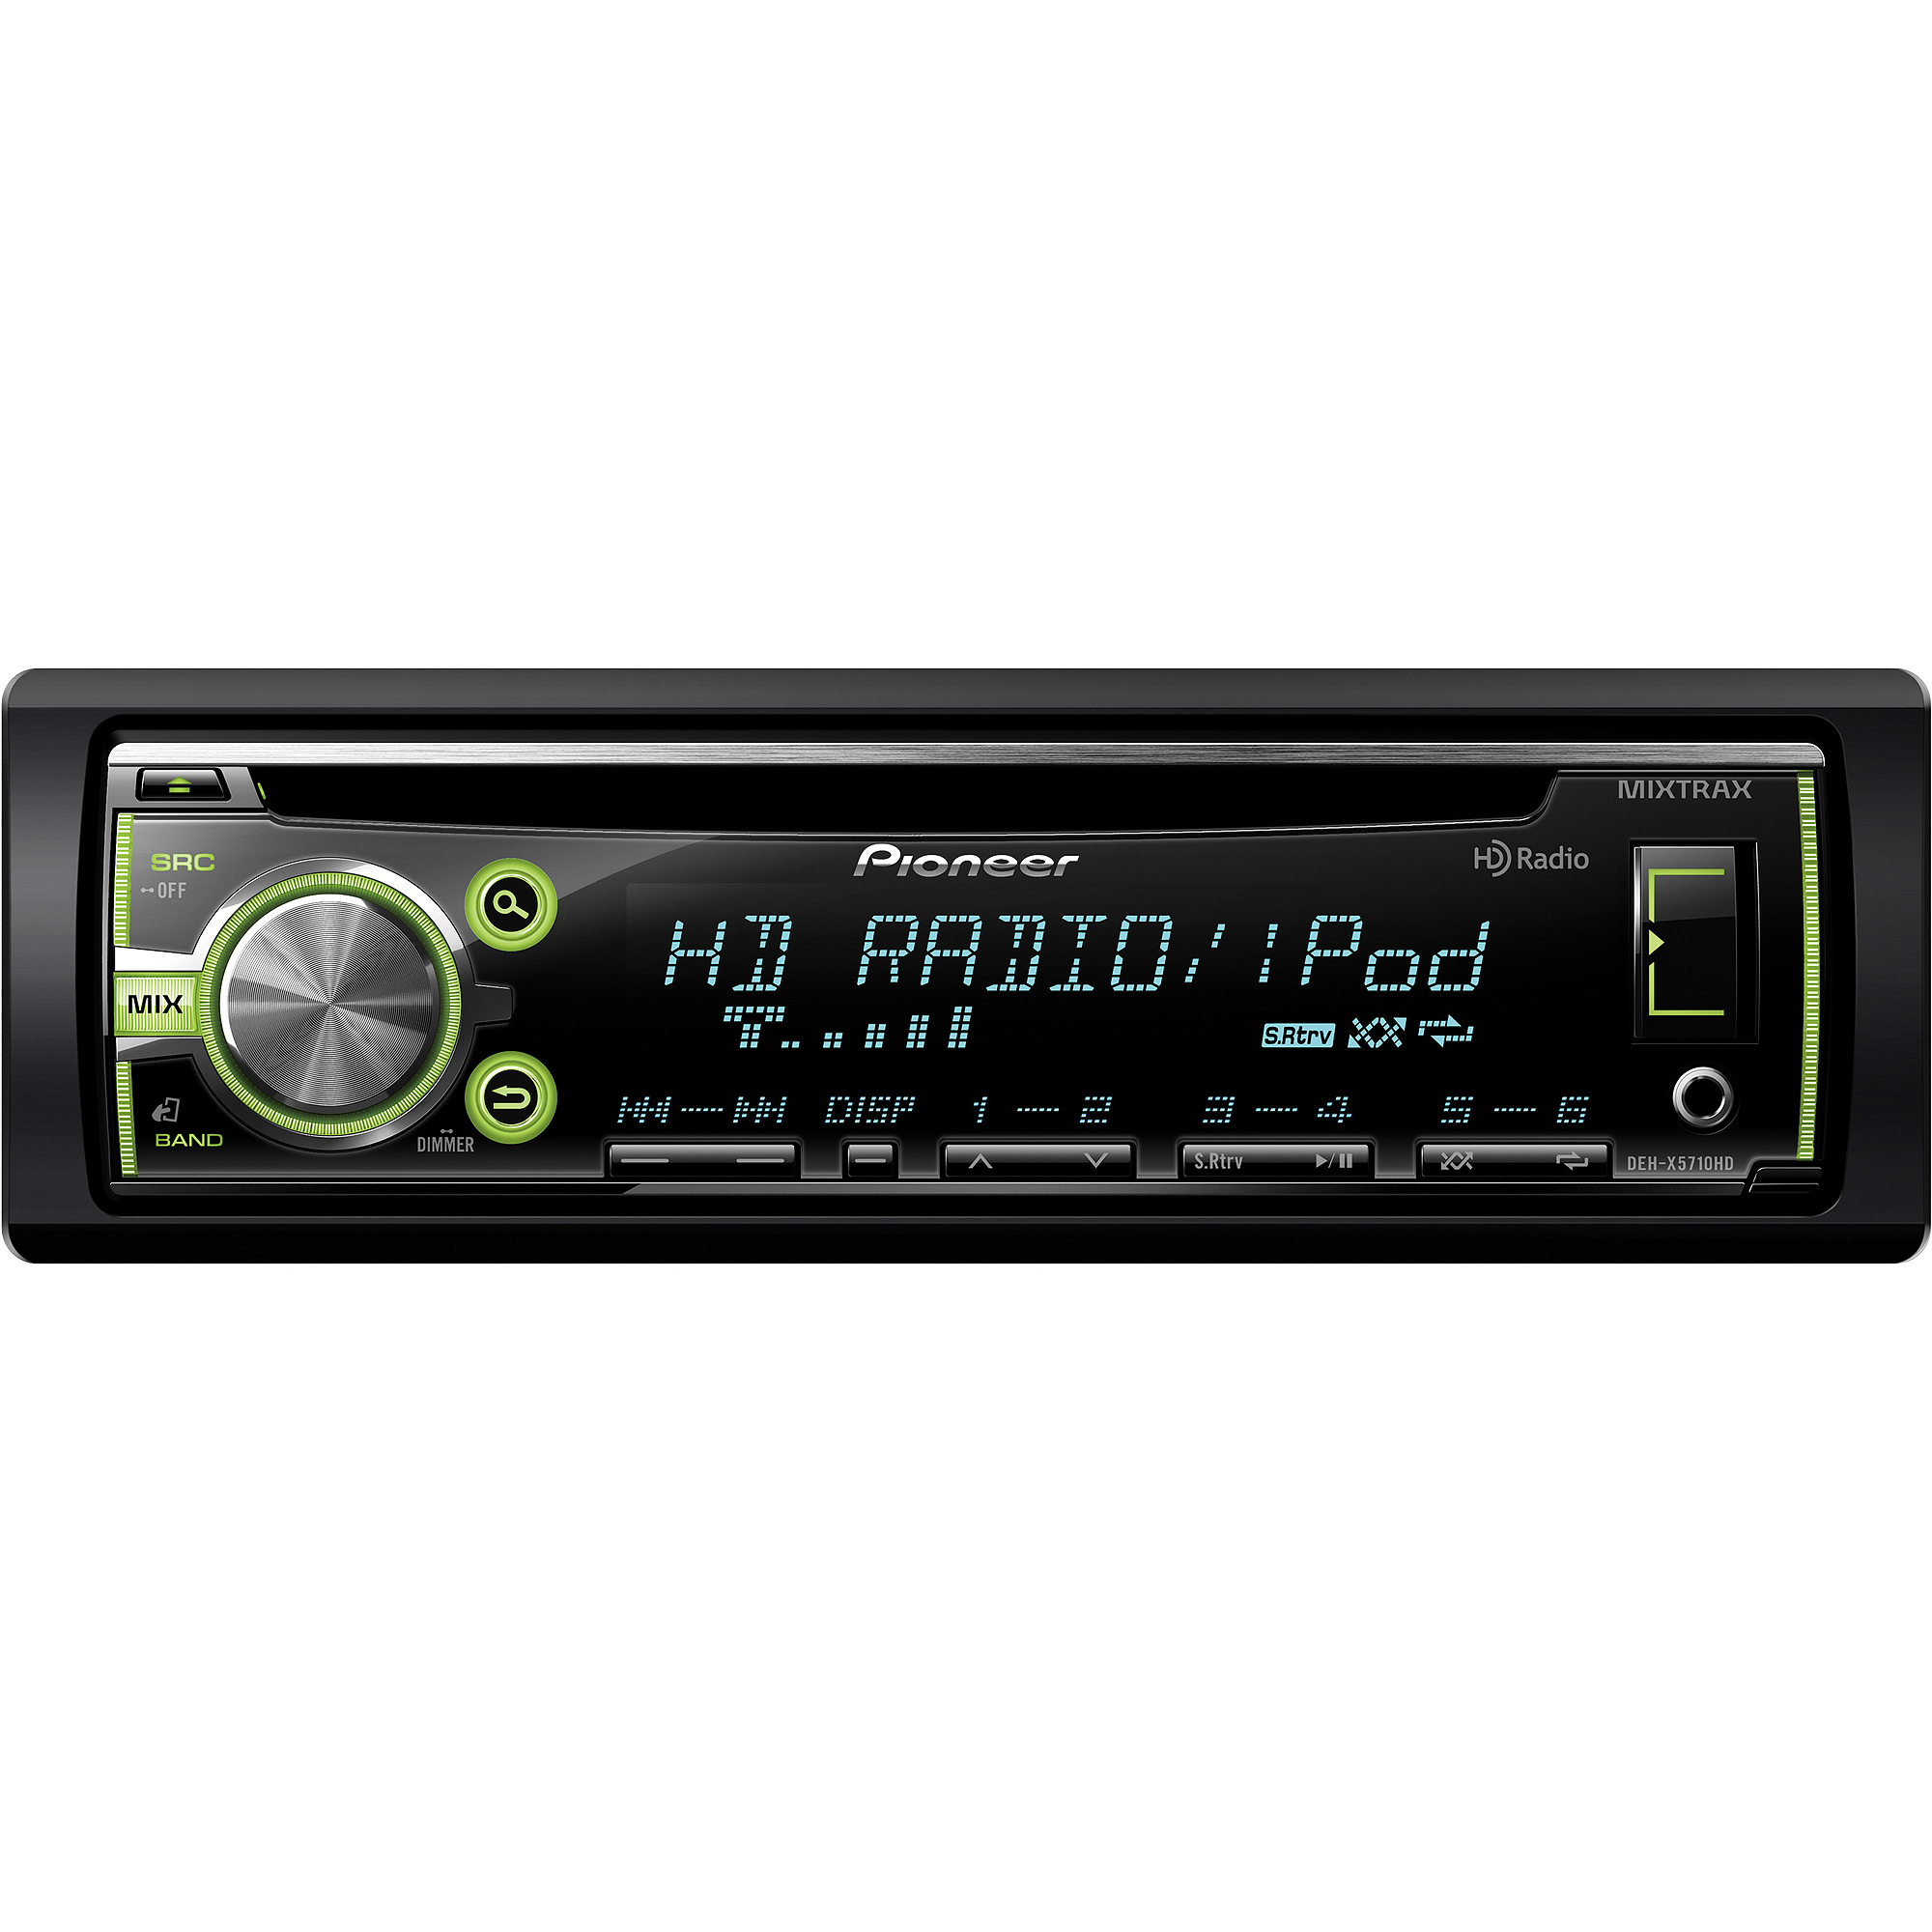 Pioneer DEH-X5710HD Single CD Receiver with Built-In HD Radio